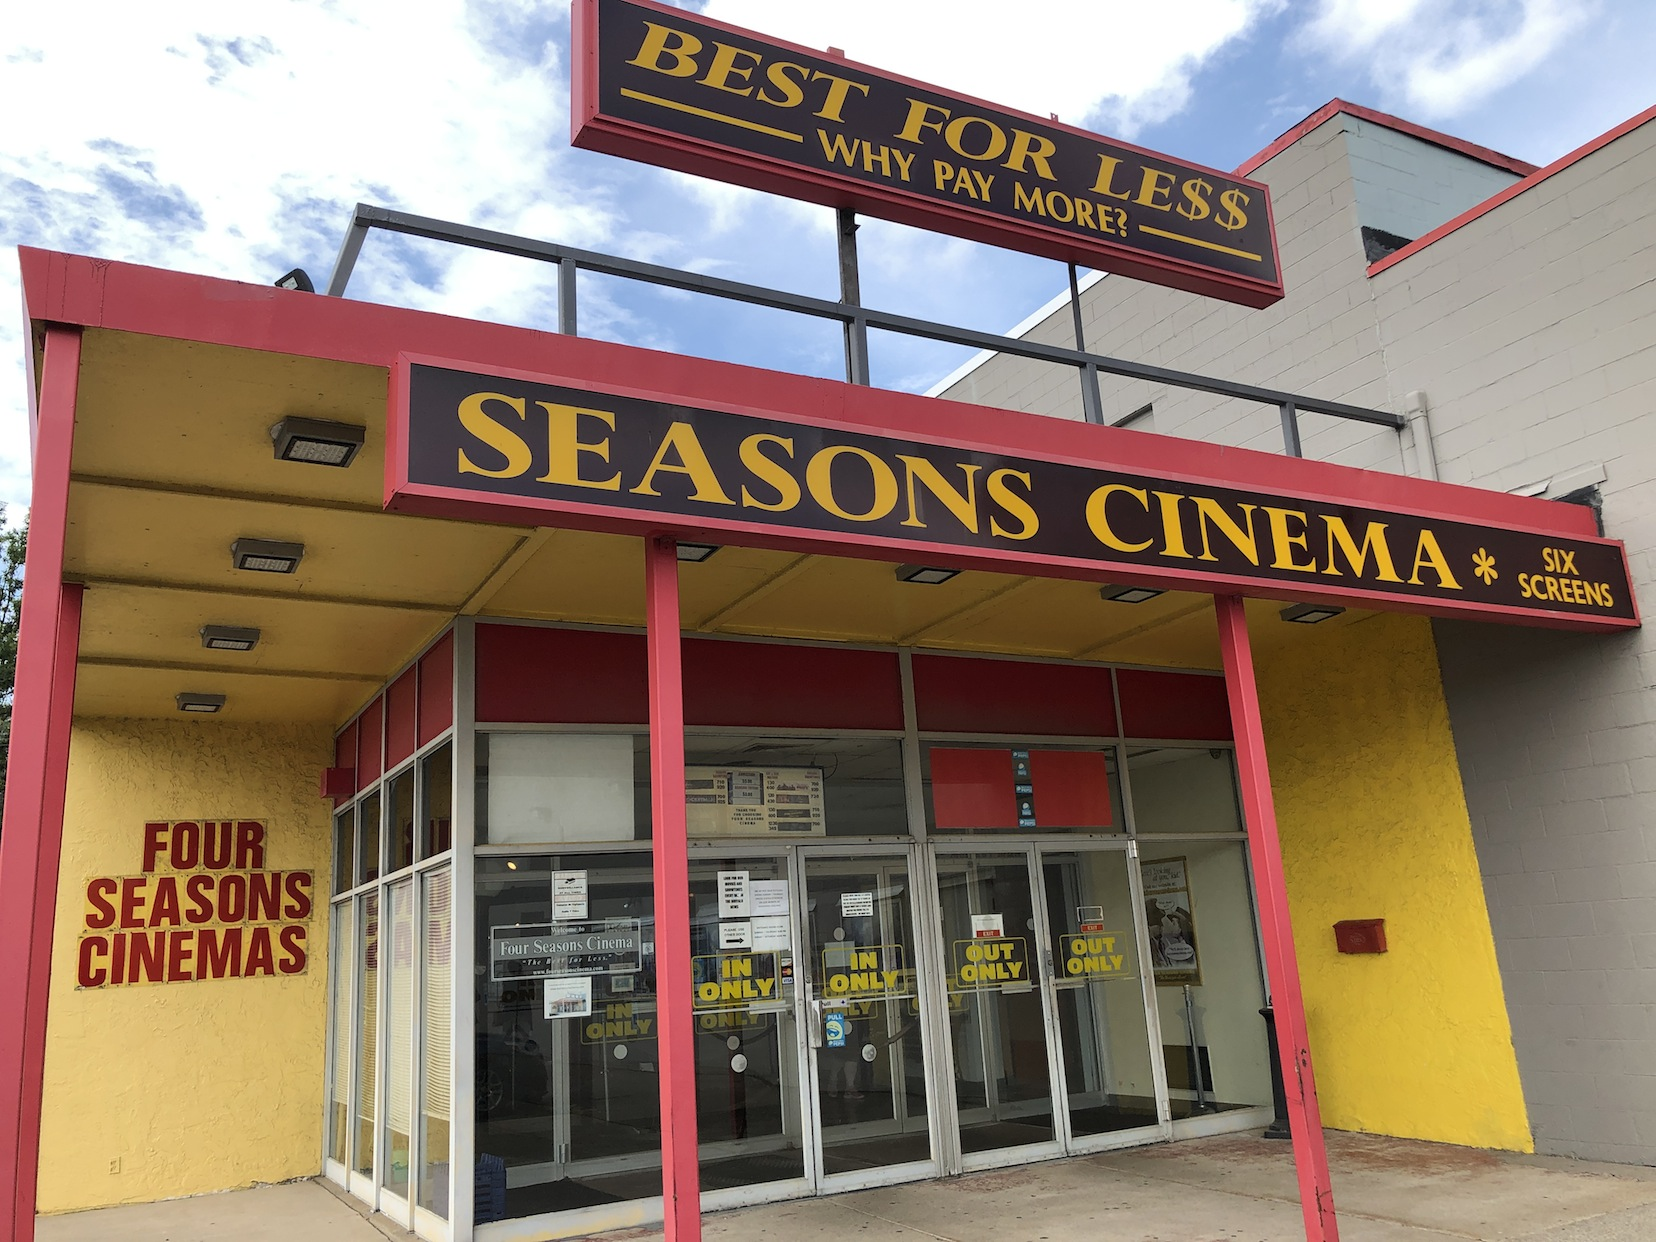 The Four Seasons Cinema.